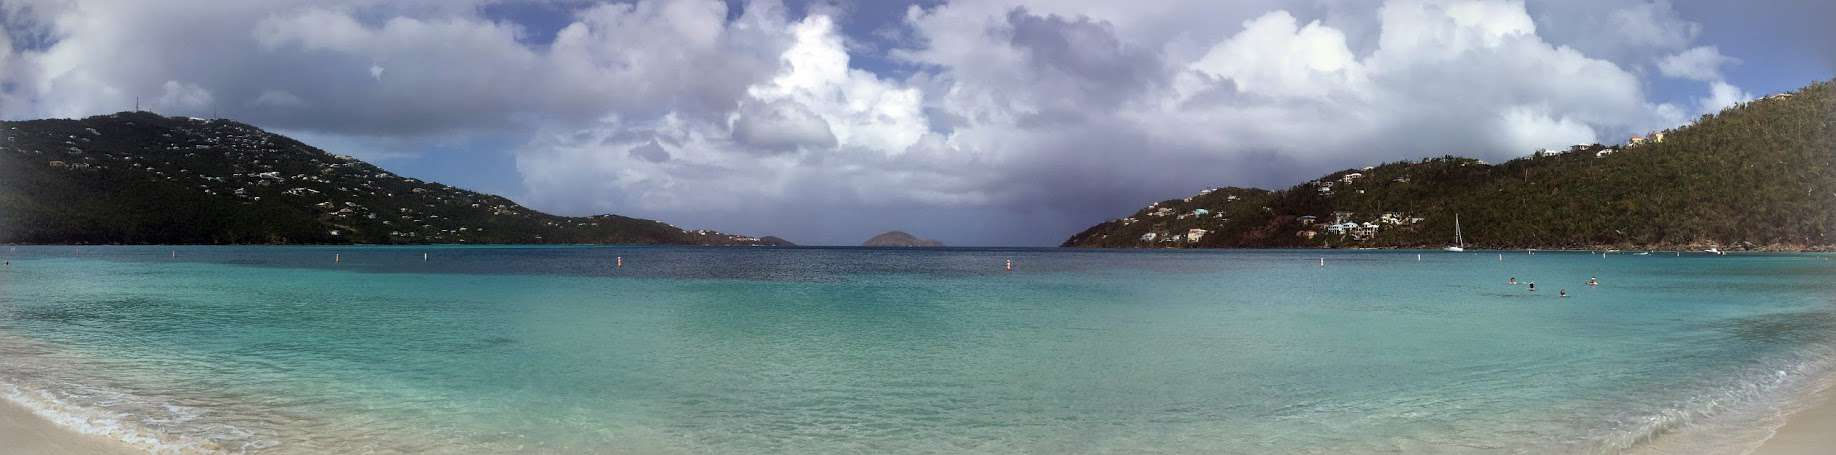 24 hours in st thomas